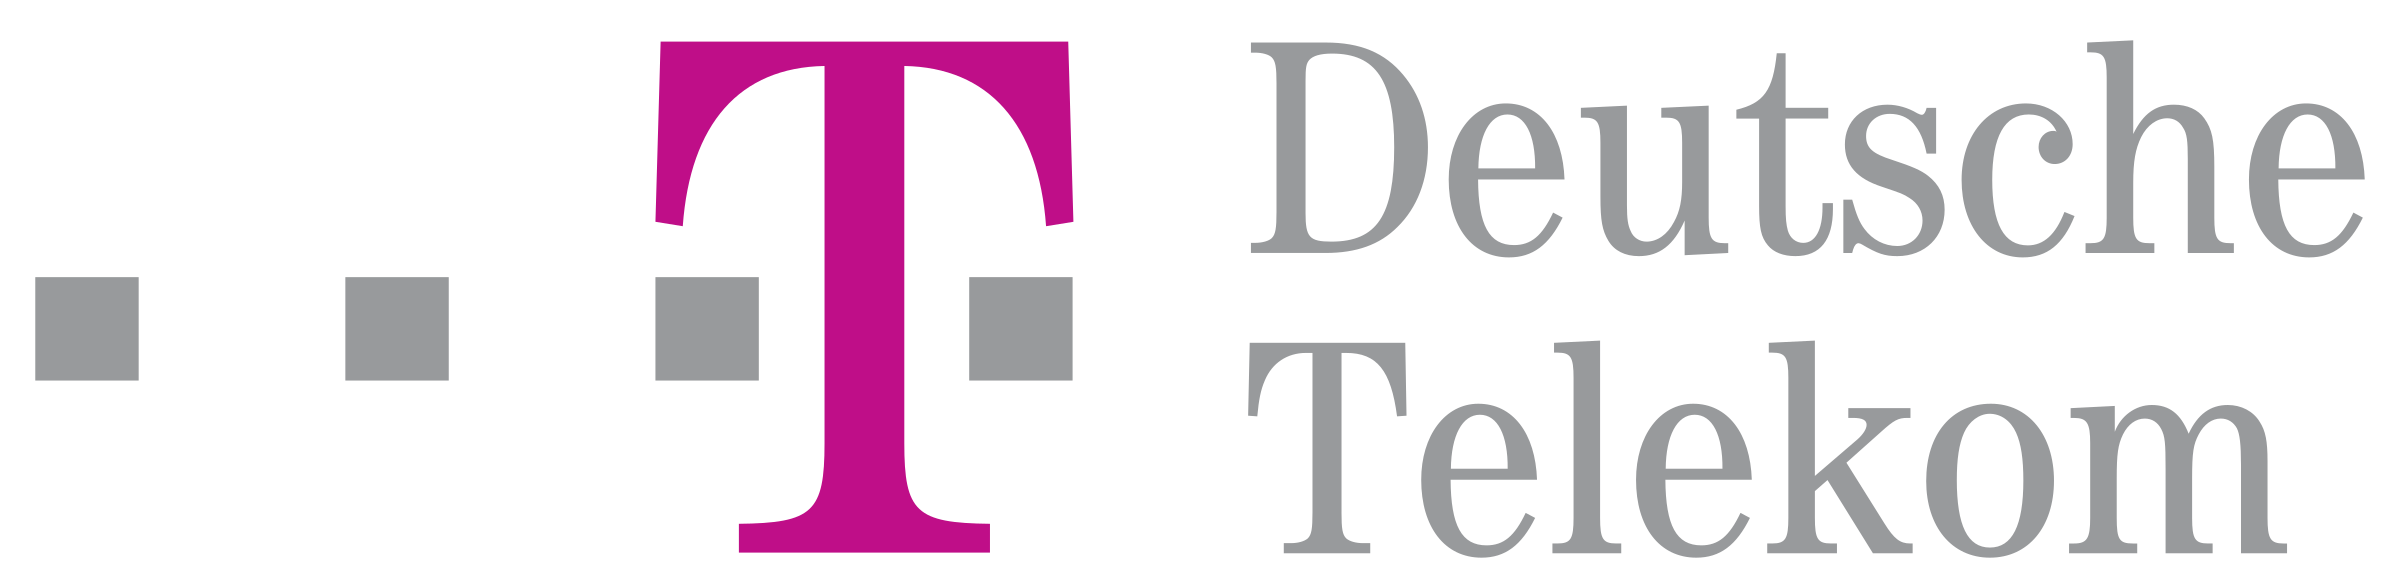 Deutsche Telekom 1 Logo Png Transparent Free And Safe In Cyberspace